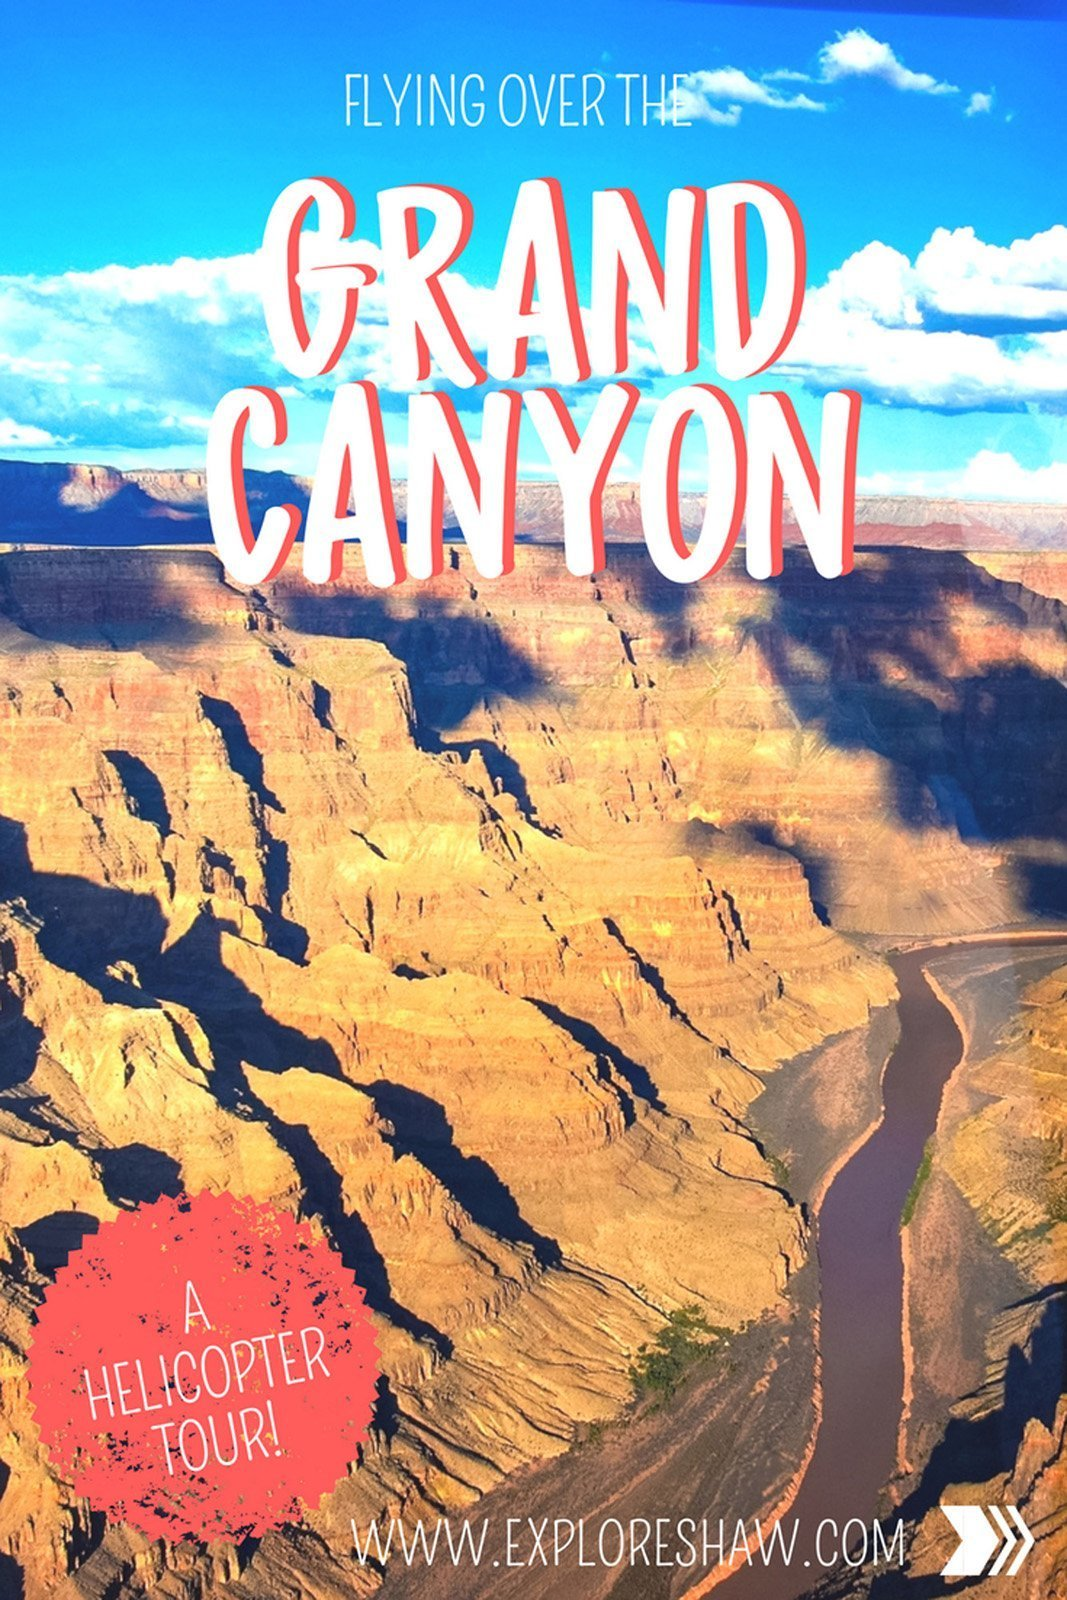 FLYING OVER THE GRAND CANYON FROM LAS VEGAS